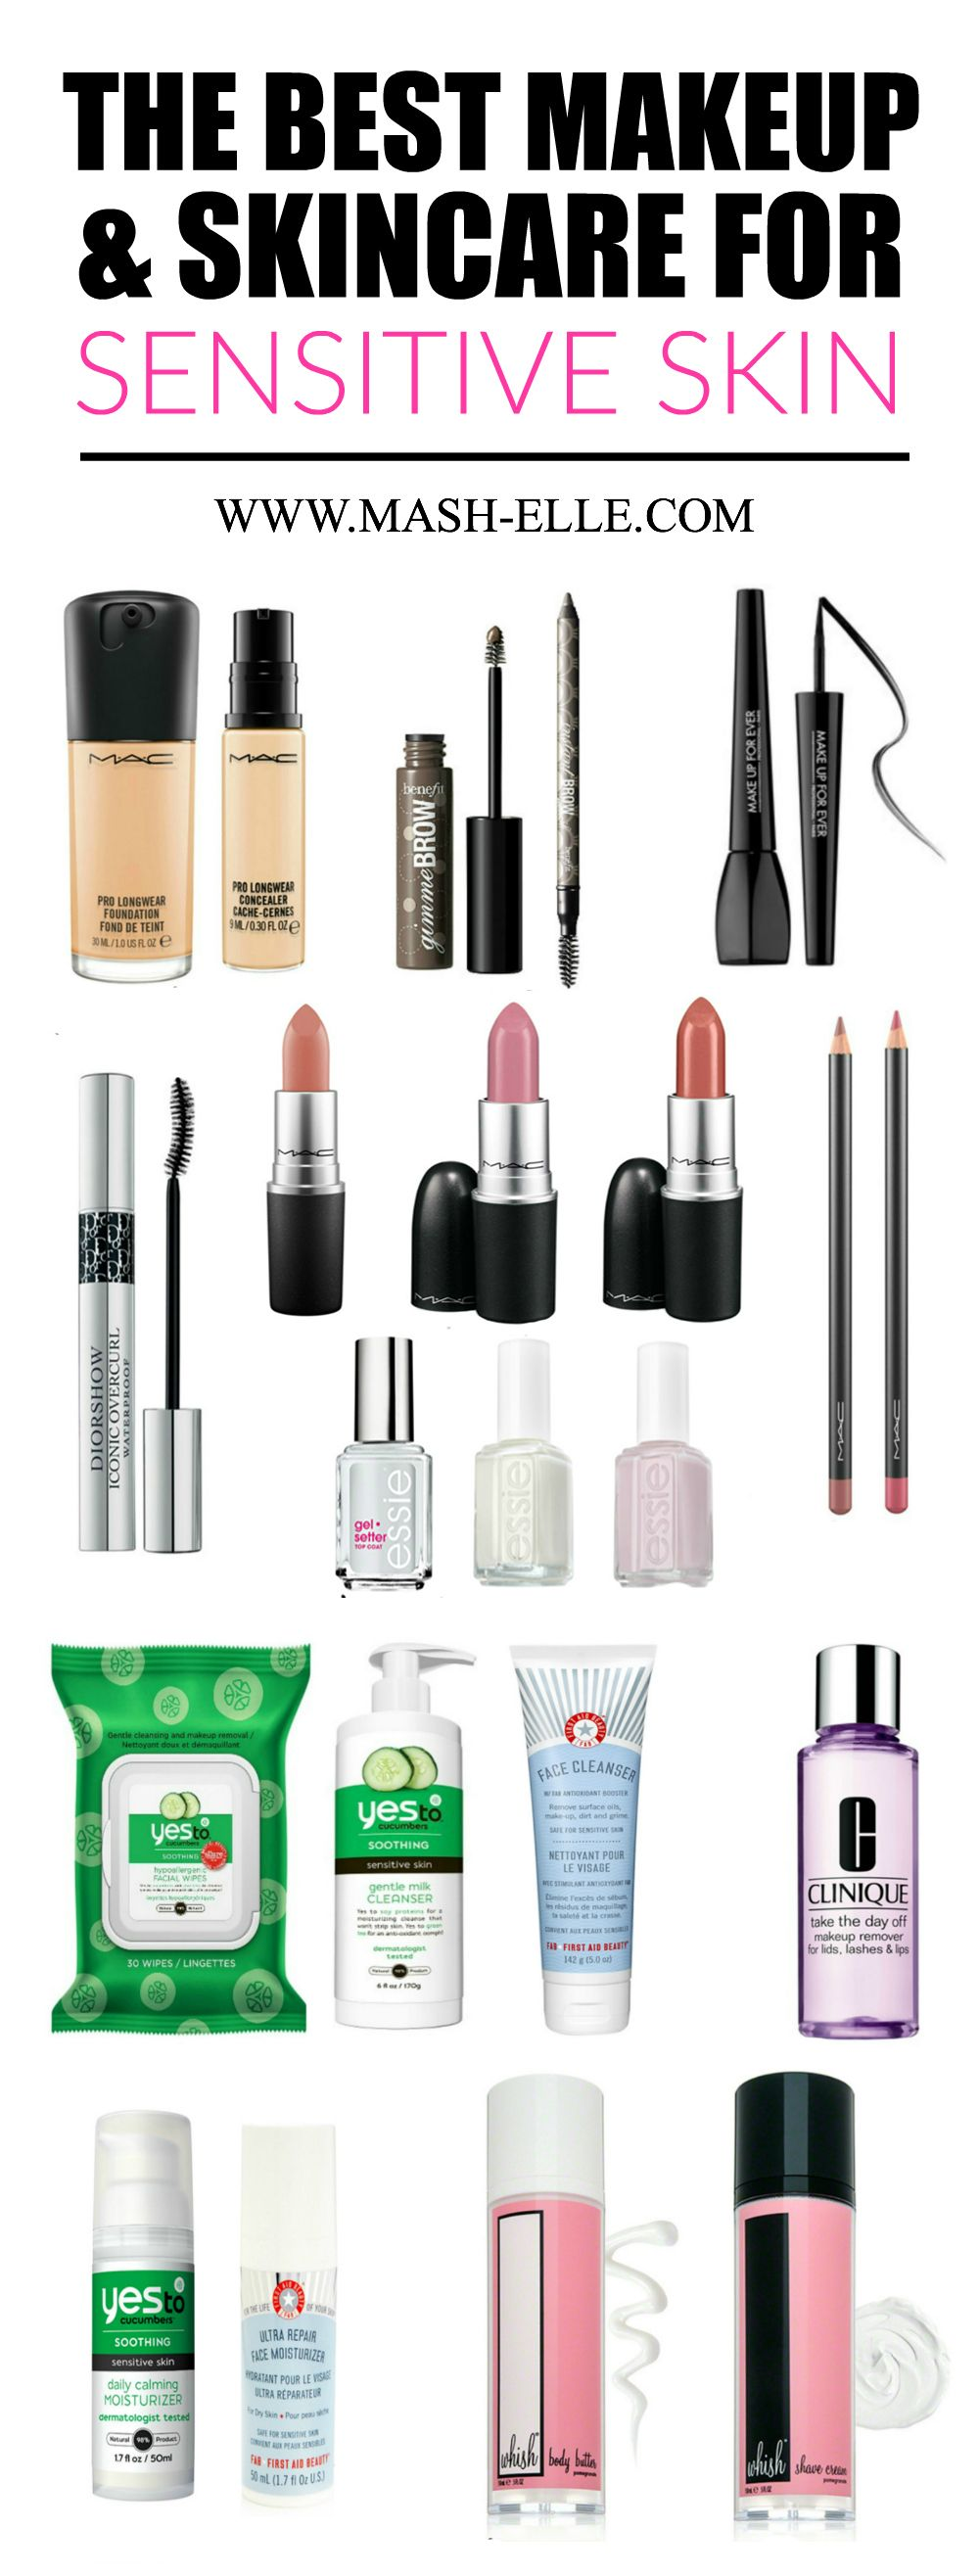 A complete list of the BEST makeup and skincare for